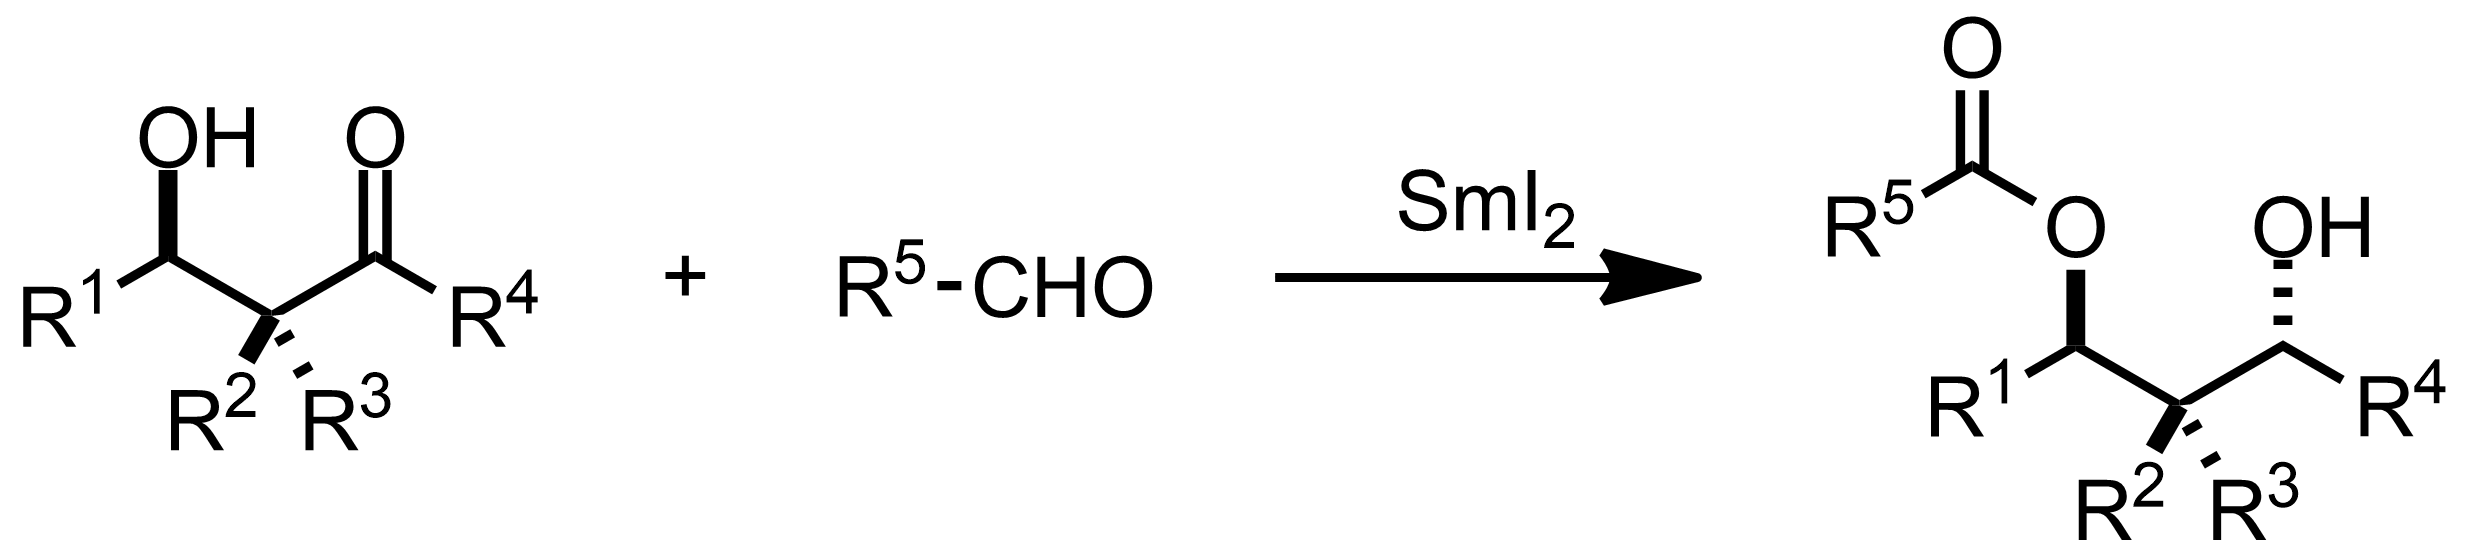 Schematic representation of the Evans-Tishchenko Reaction.